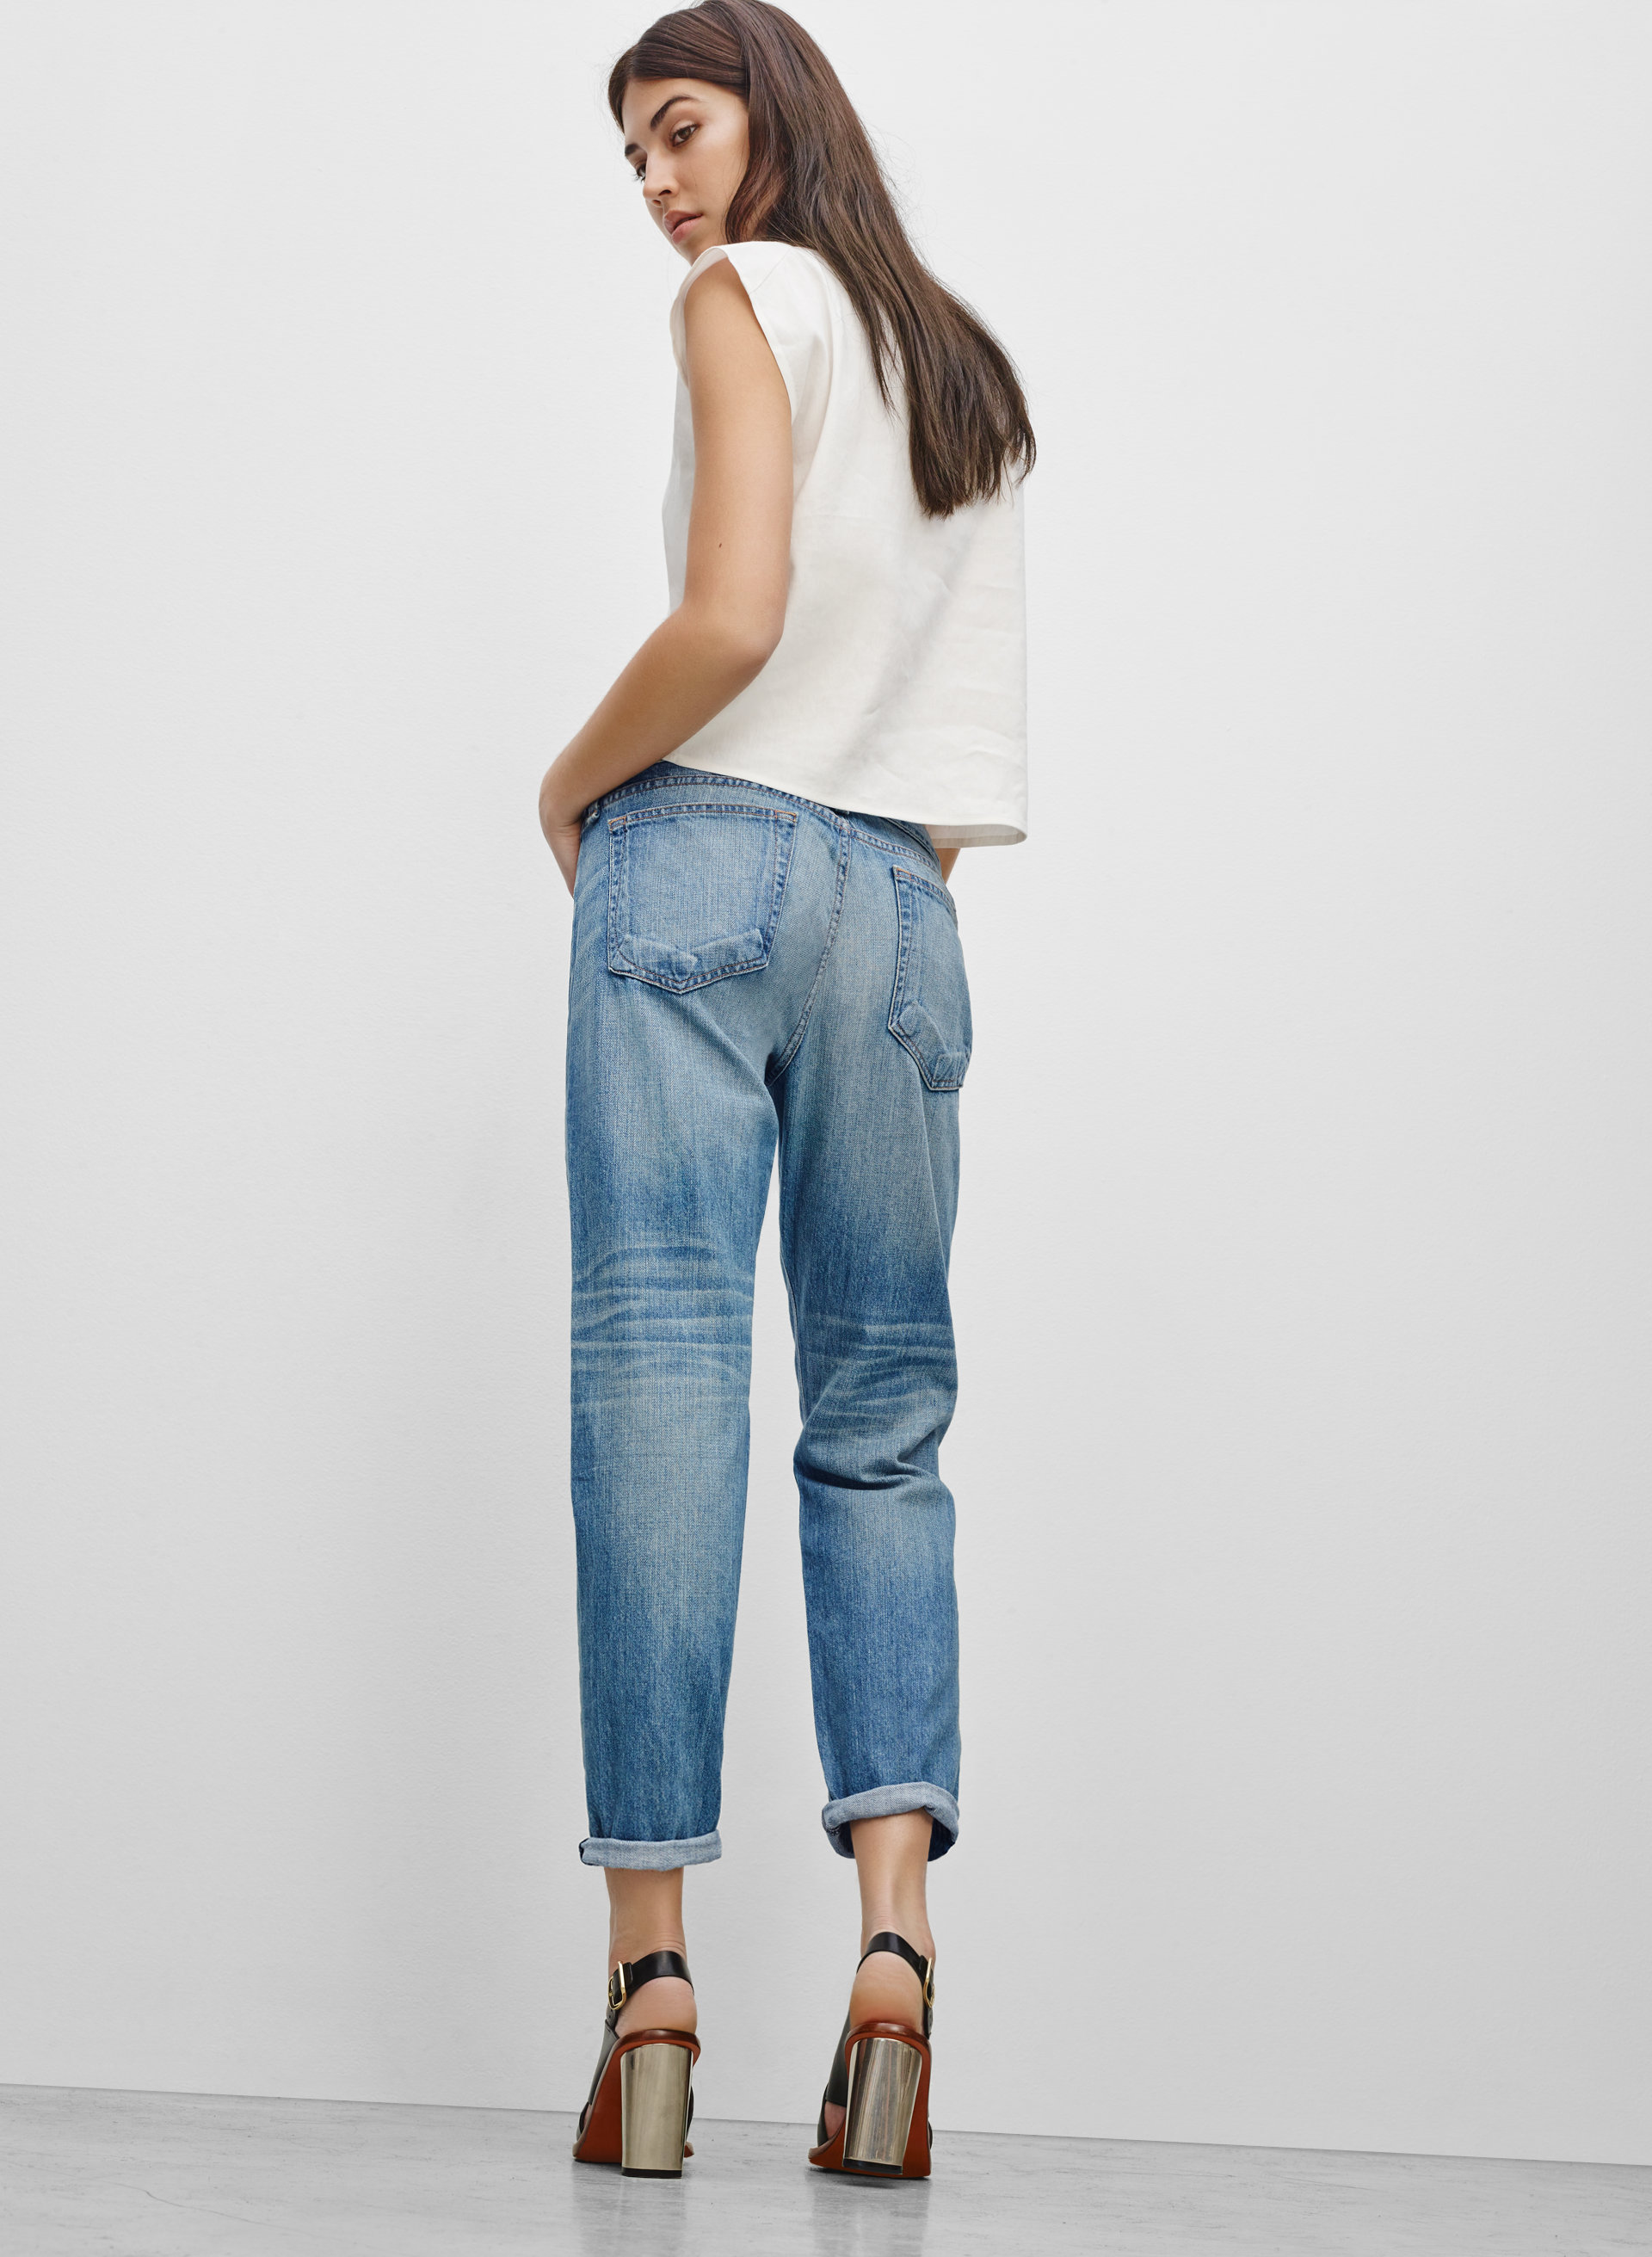 Shop a wide selection of plus size boyfriend jeans for women. Find the perfect color and style for you at Roamans - stylish plus size clothing and apparel for women.